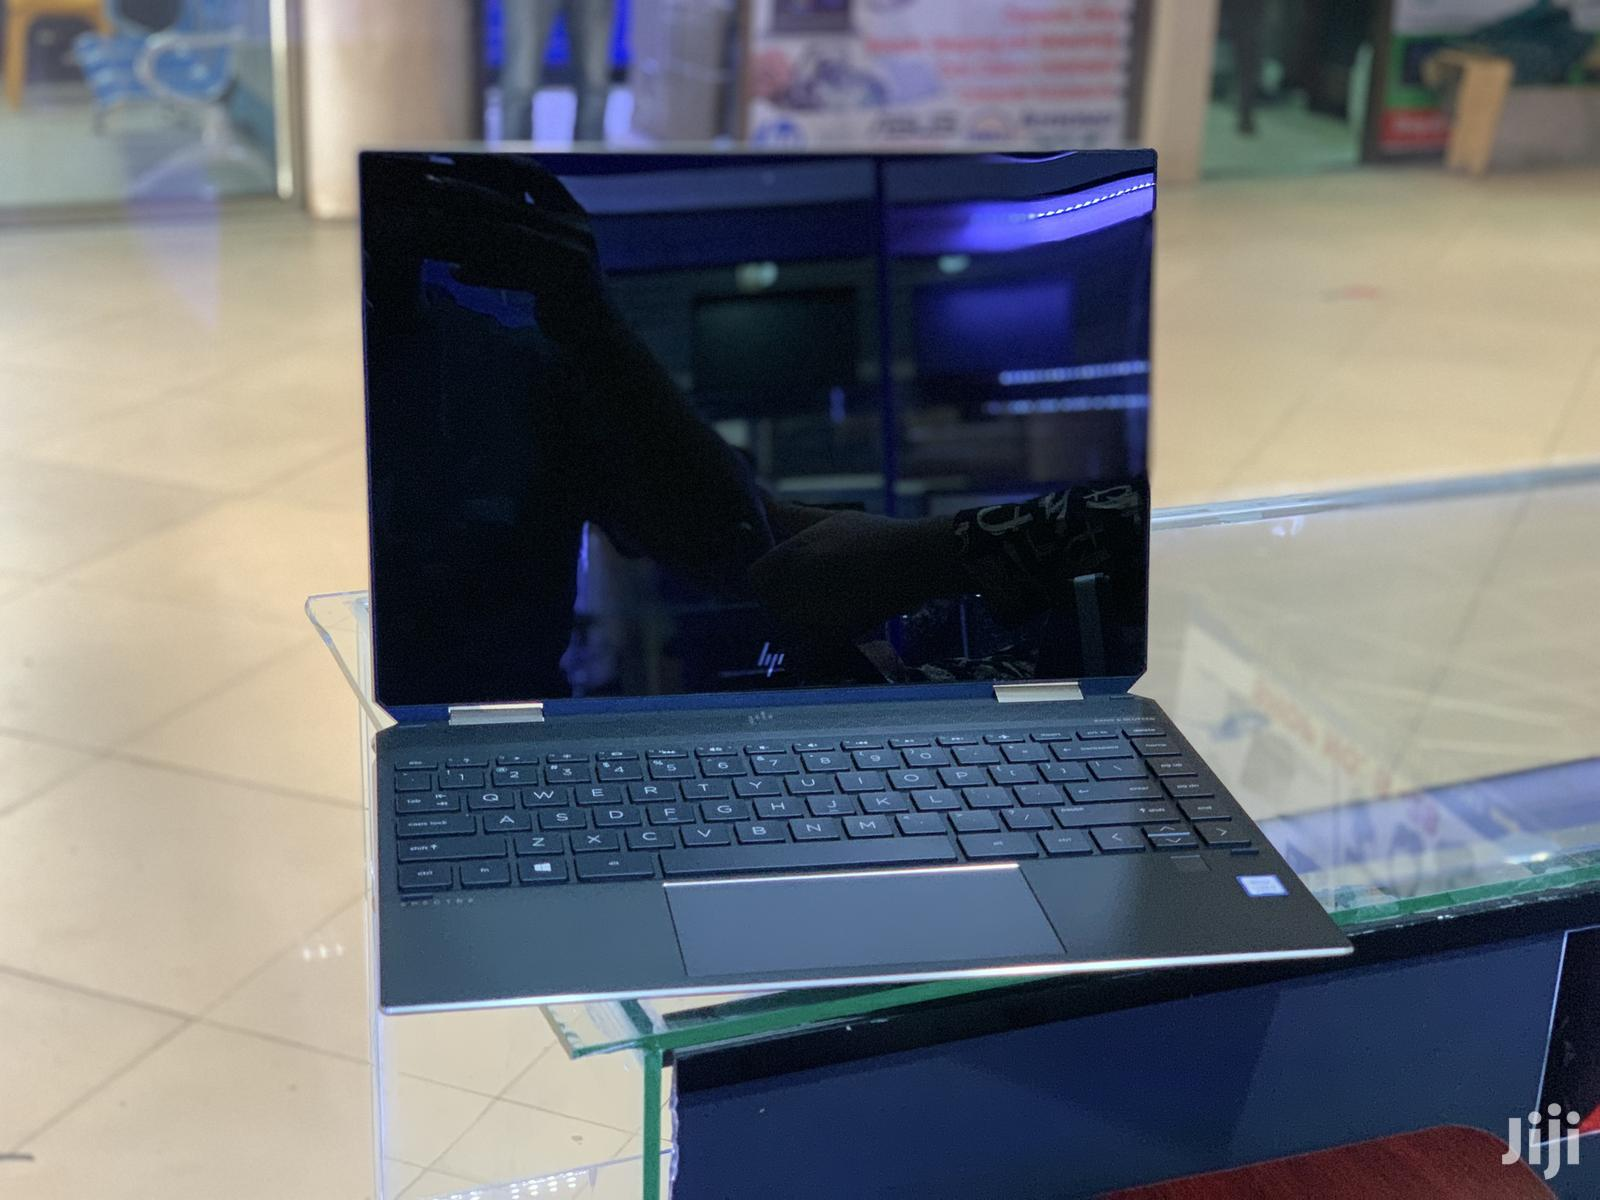 New Laptop HP Spectre 16GB Intel Core i7 SSD 512GB | Laptops & Computers for sale in Kampala, Central Region, Uganda